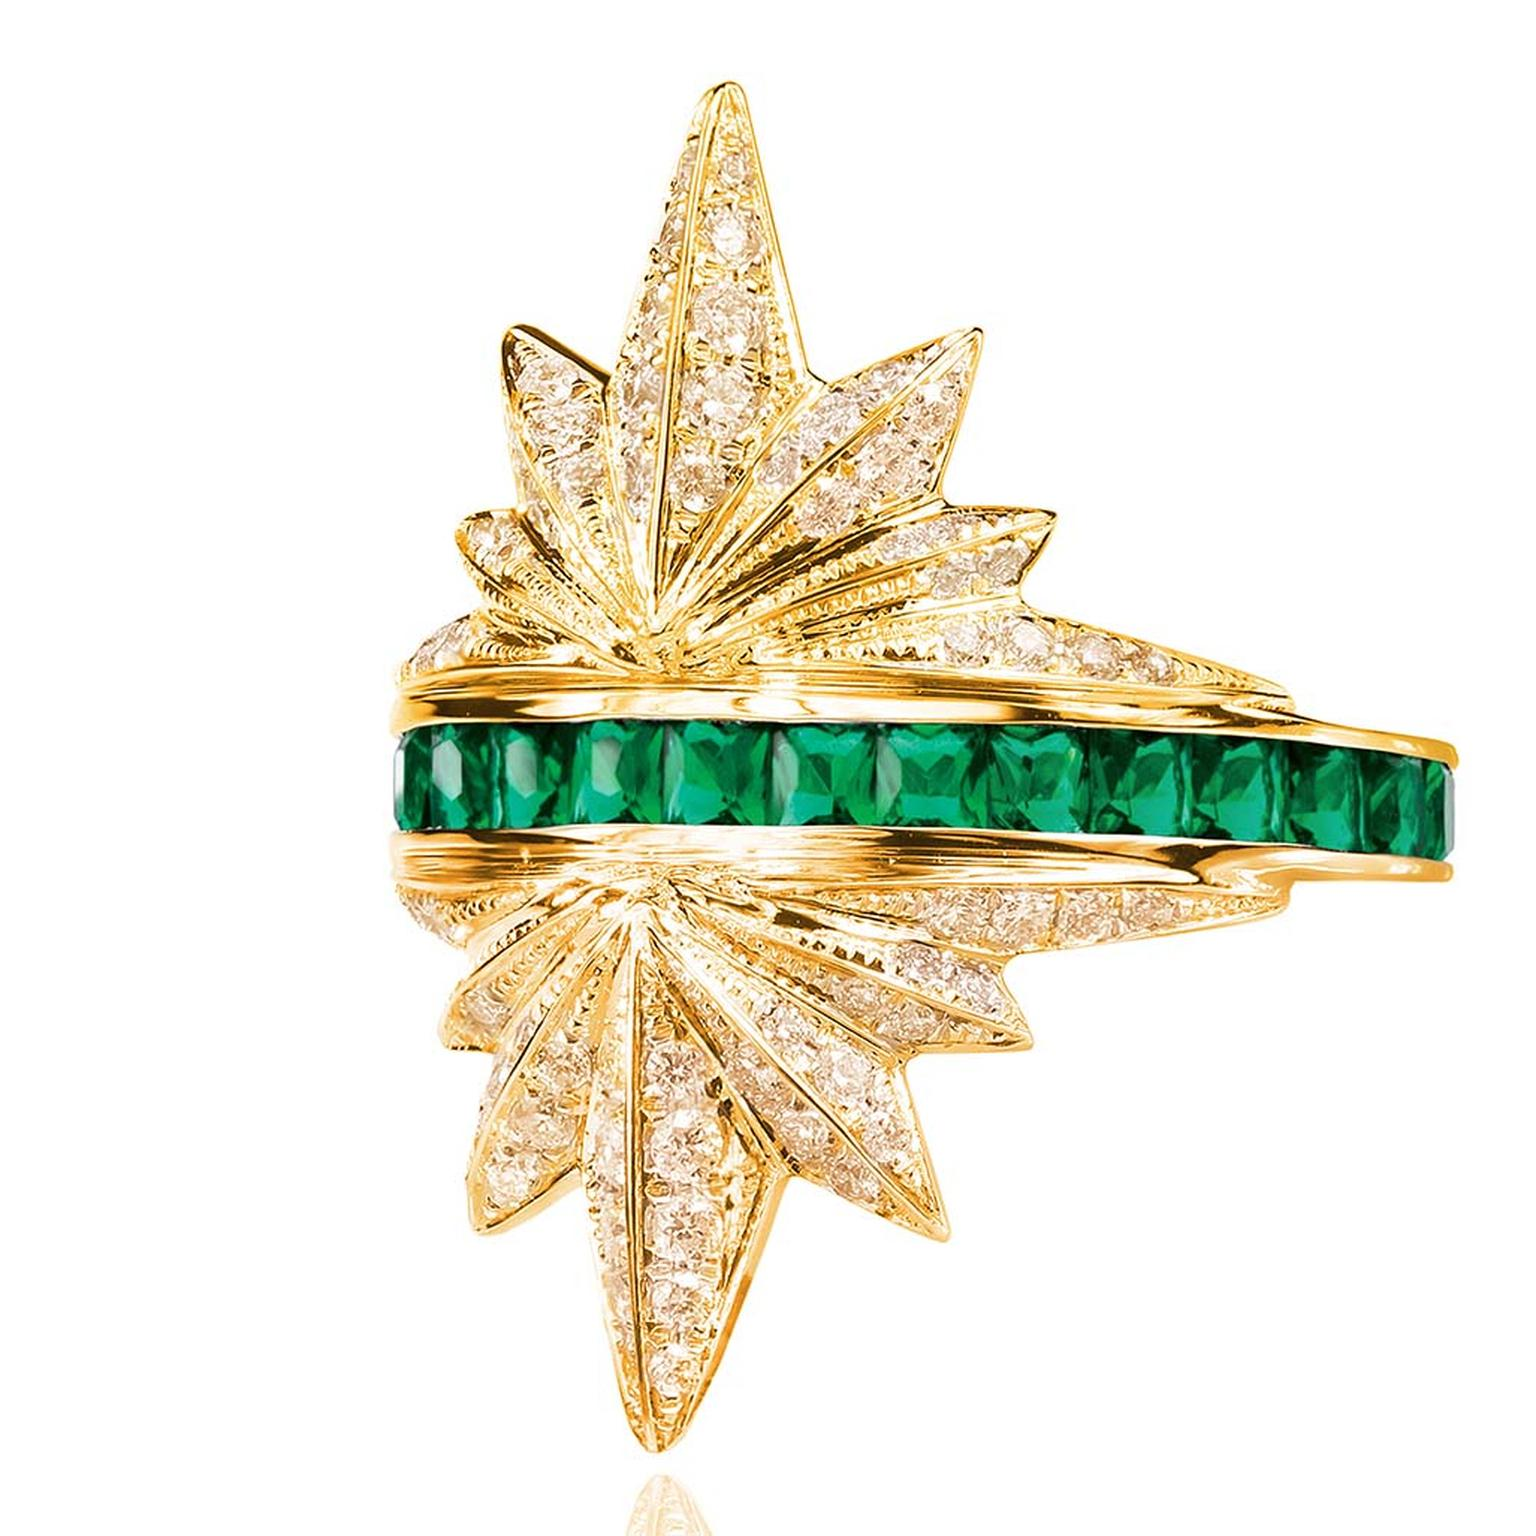 Melville Fine Jewellery_E_Rising Sun collection - Prism ring in diamond & emerald